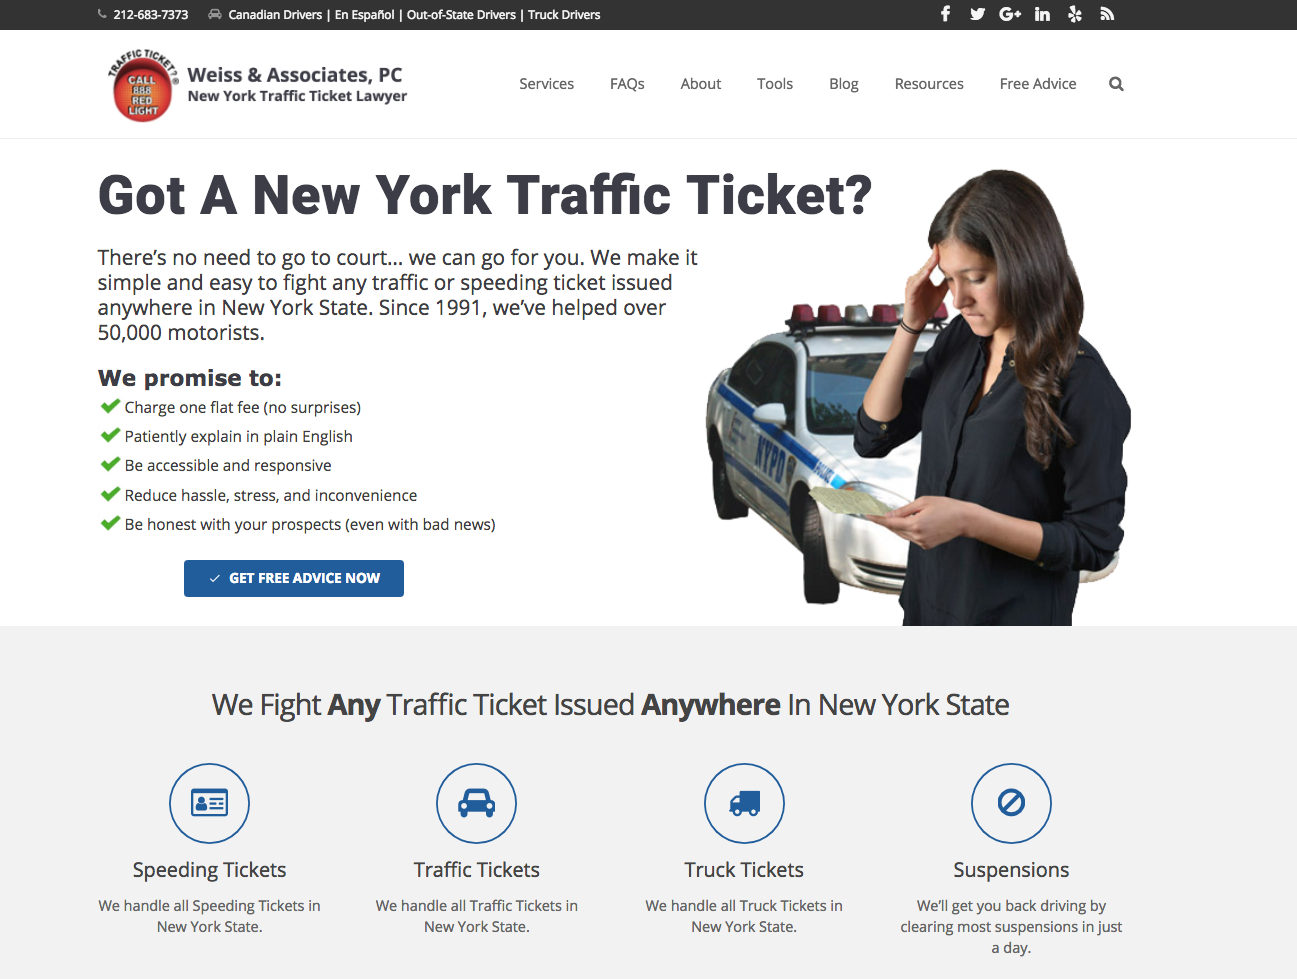 nytrafficticket-weiss-associates-pc-portfolio.png